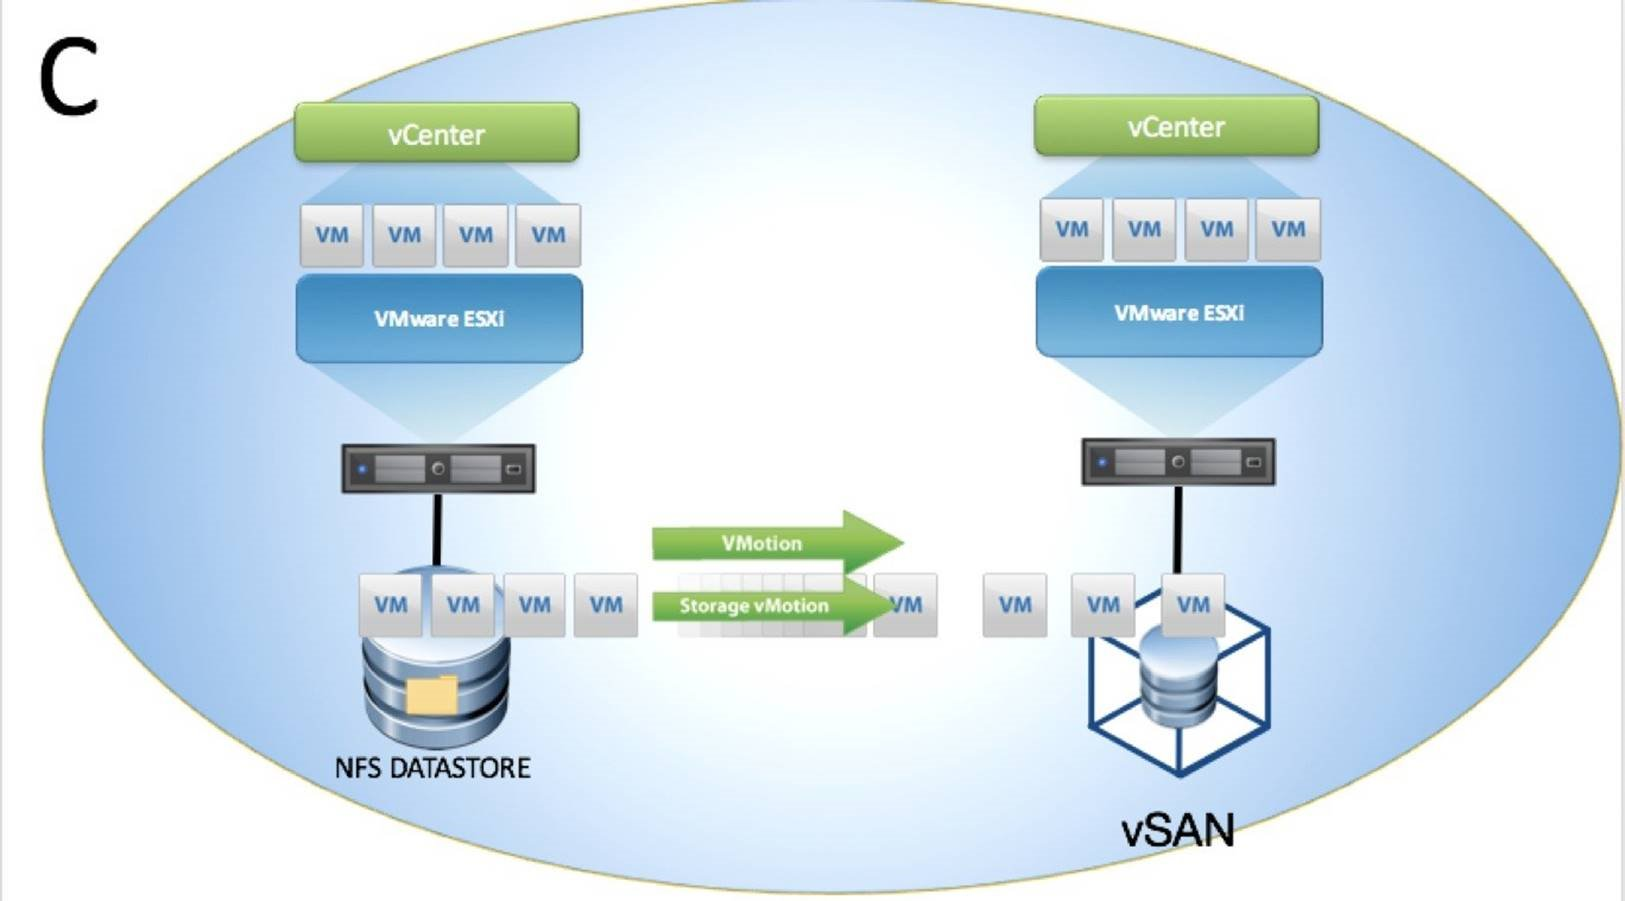 Two vCenters, Single SSO Domain